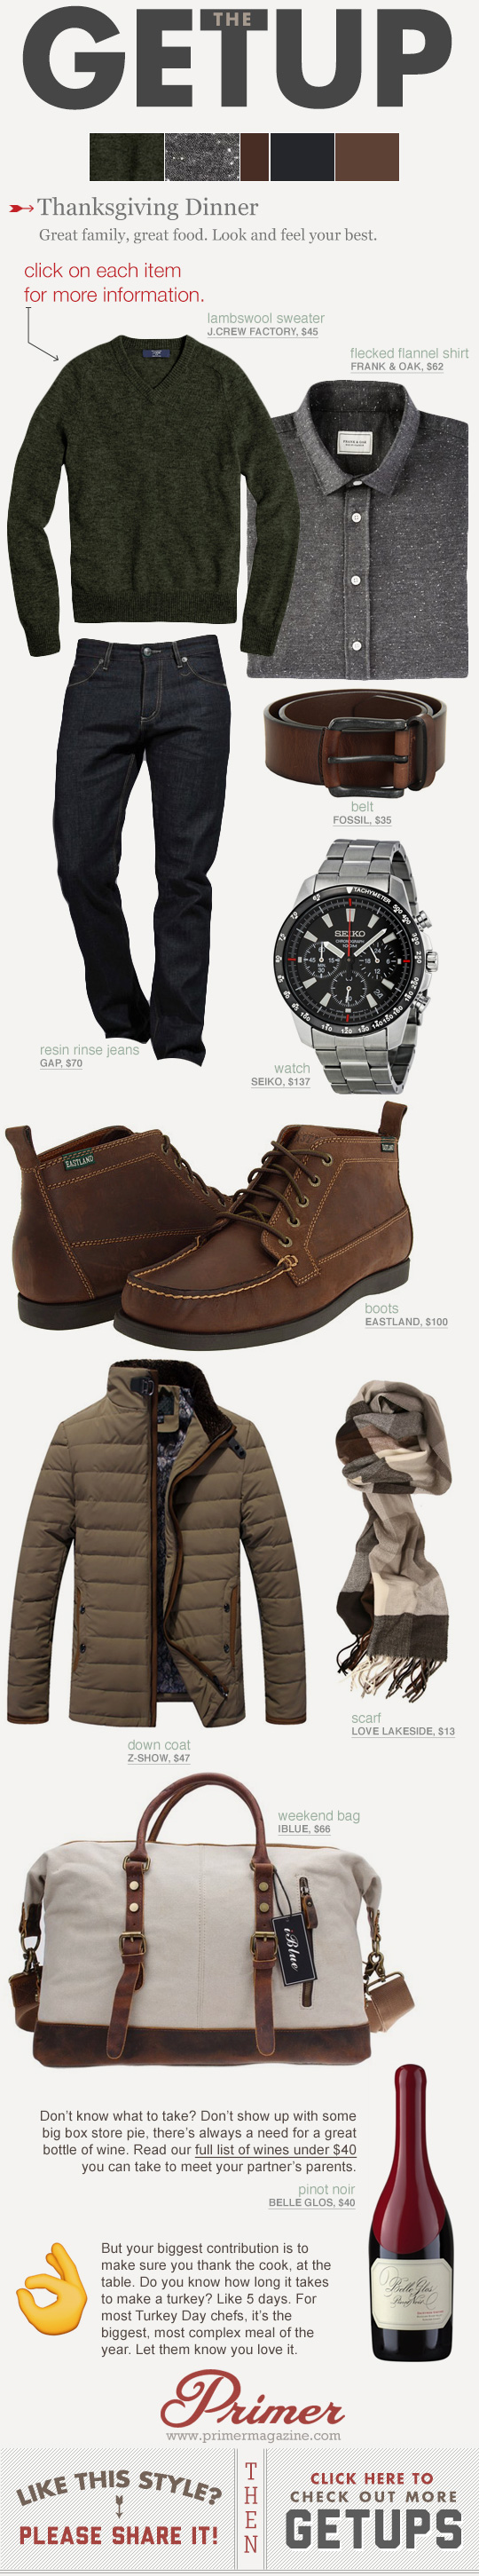 Getup outfit inspiration with green sweater, jeans, and moc toe boots